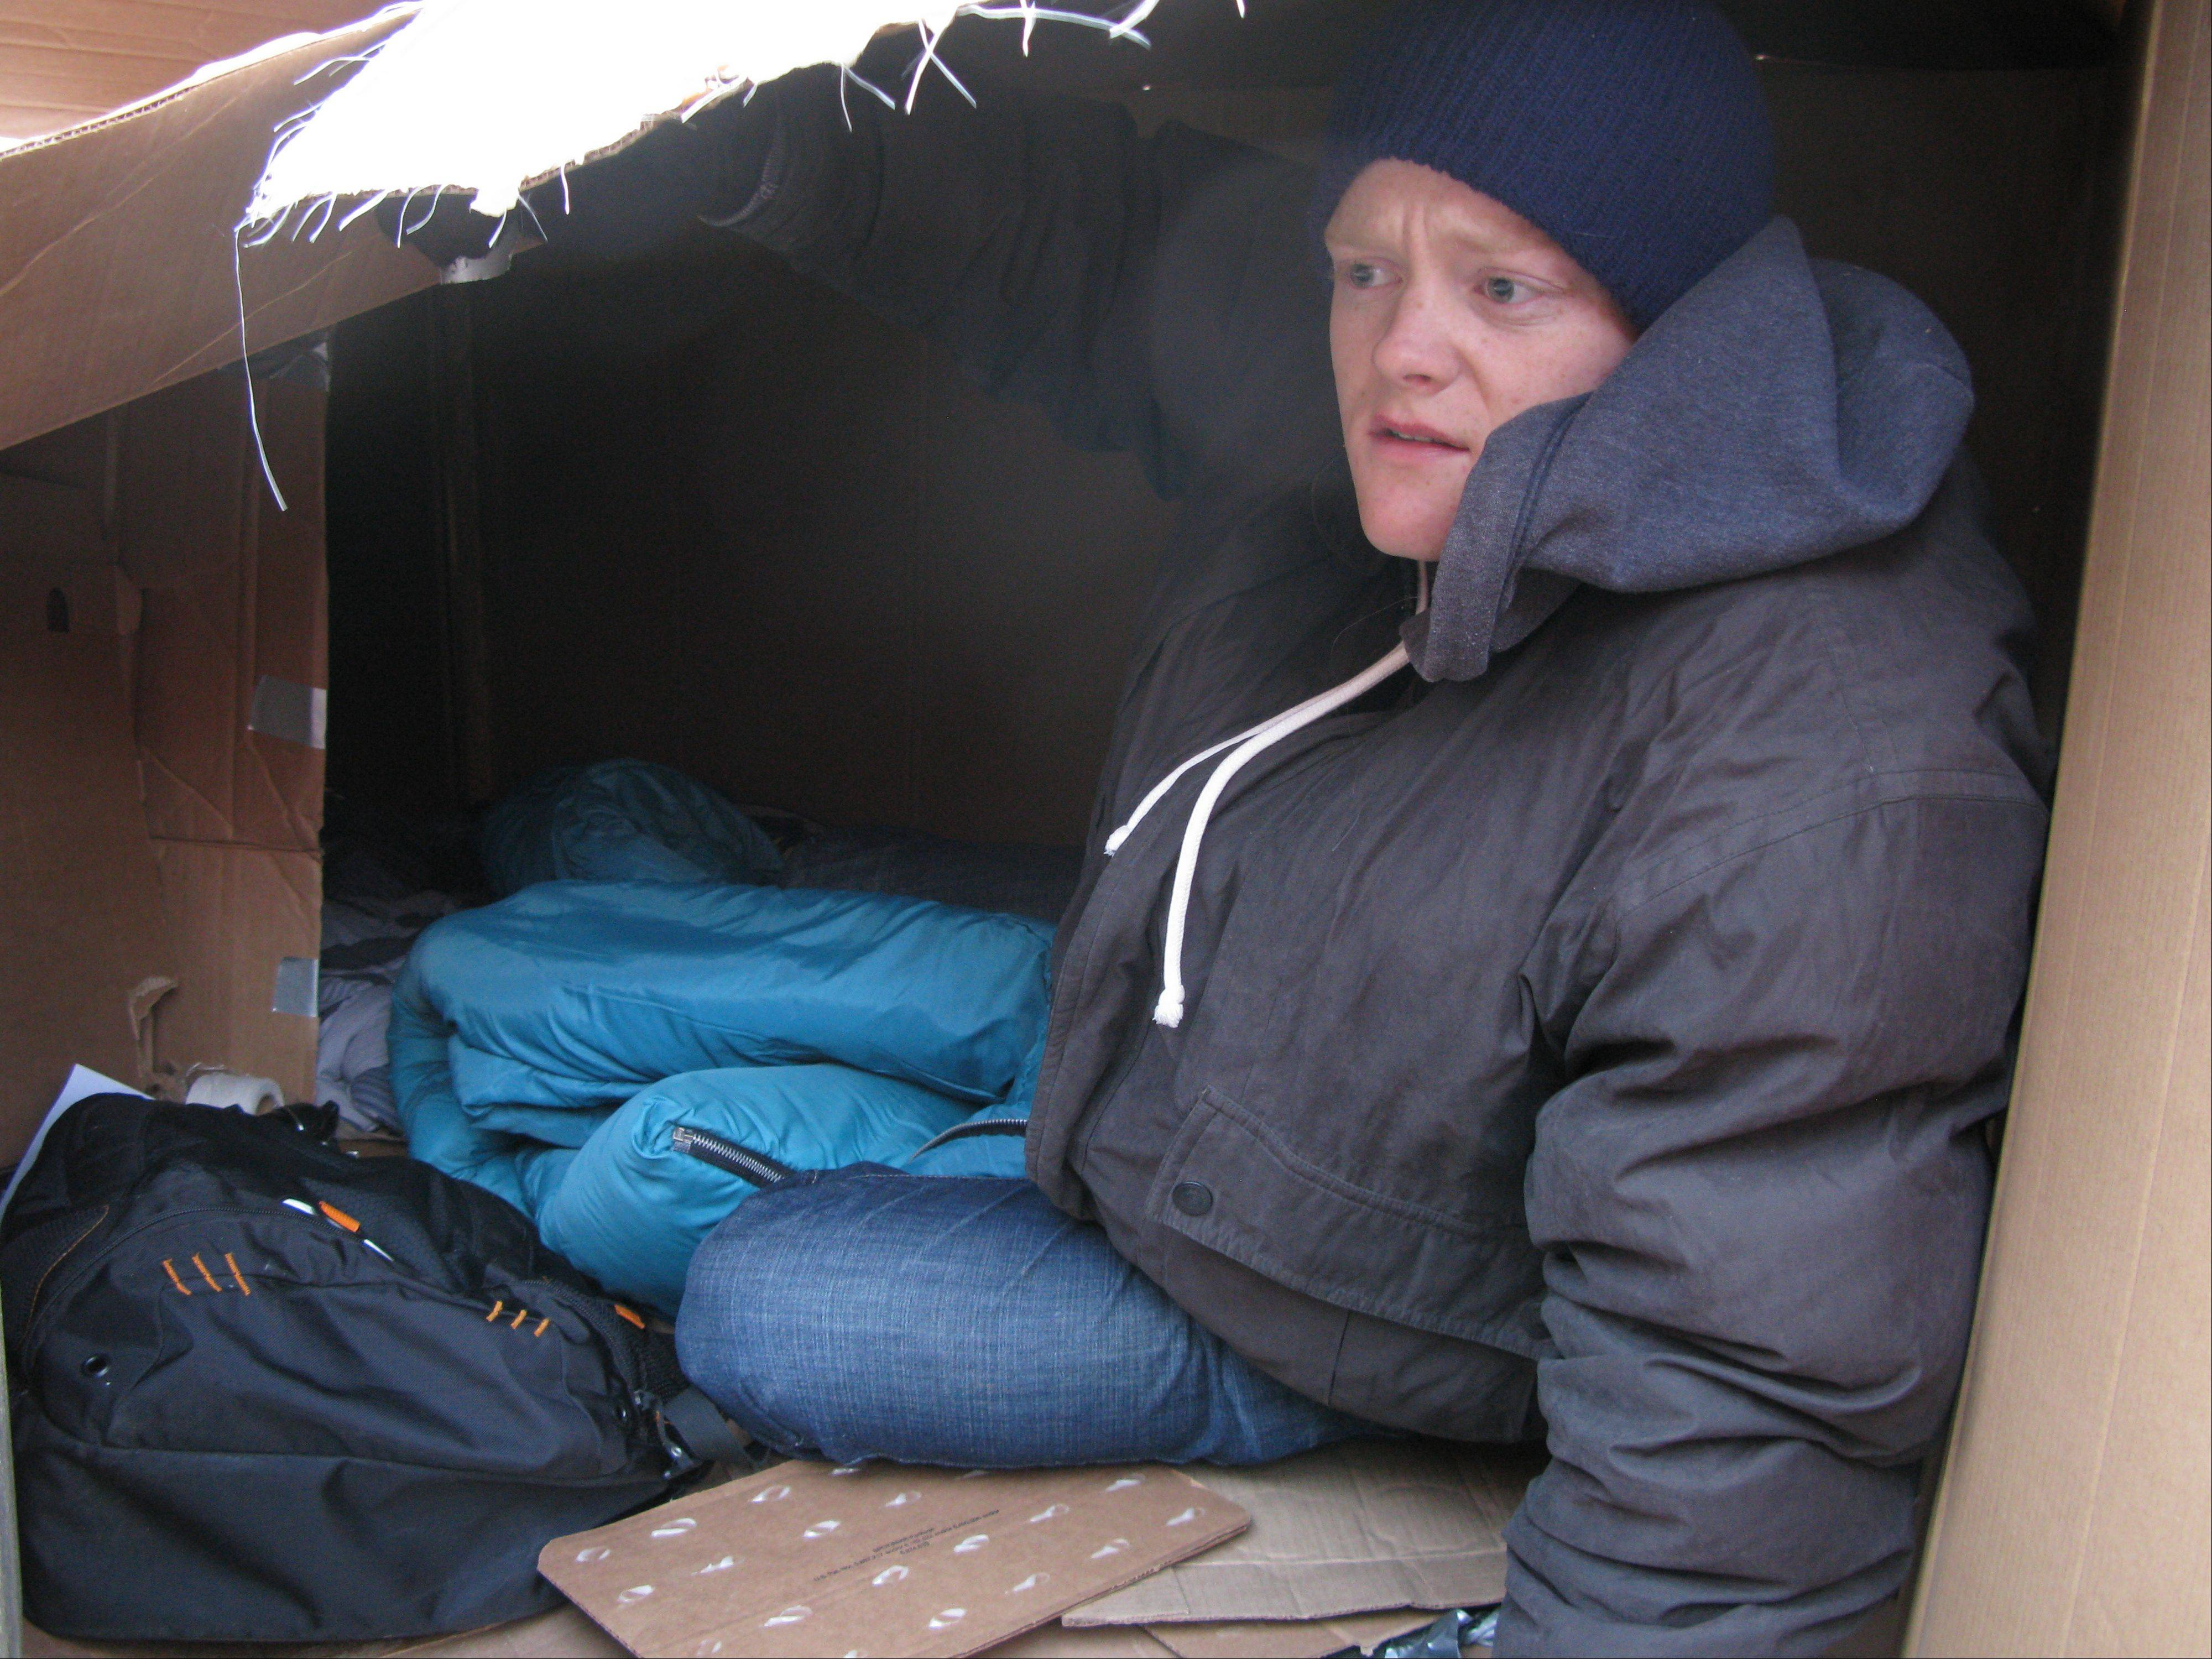 Oakton Community College student Ryan Alm describes how he kept warm while sleeping outdoors in a cardboard box to experience firsthand what it would be like to be homeless. Roughly 27 students stayed through the night in shanties they built out of discarded cardboard boxes in the courtyard of the Des Plaines campus.